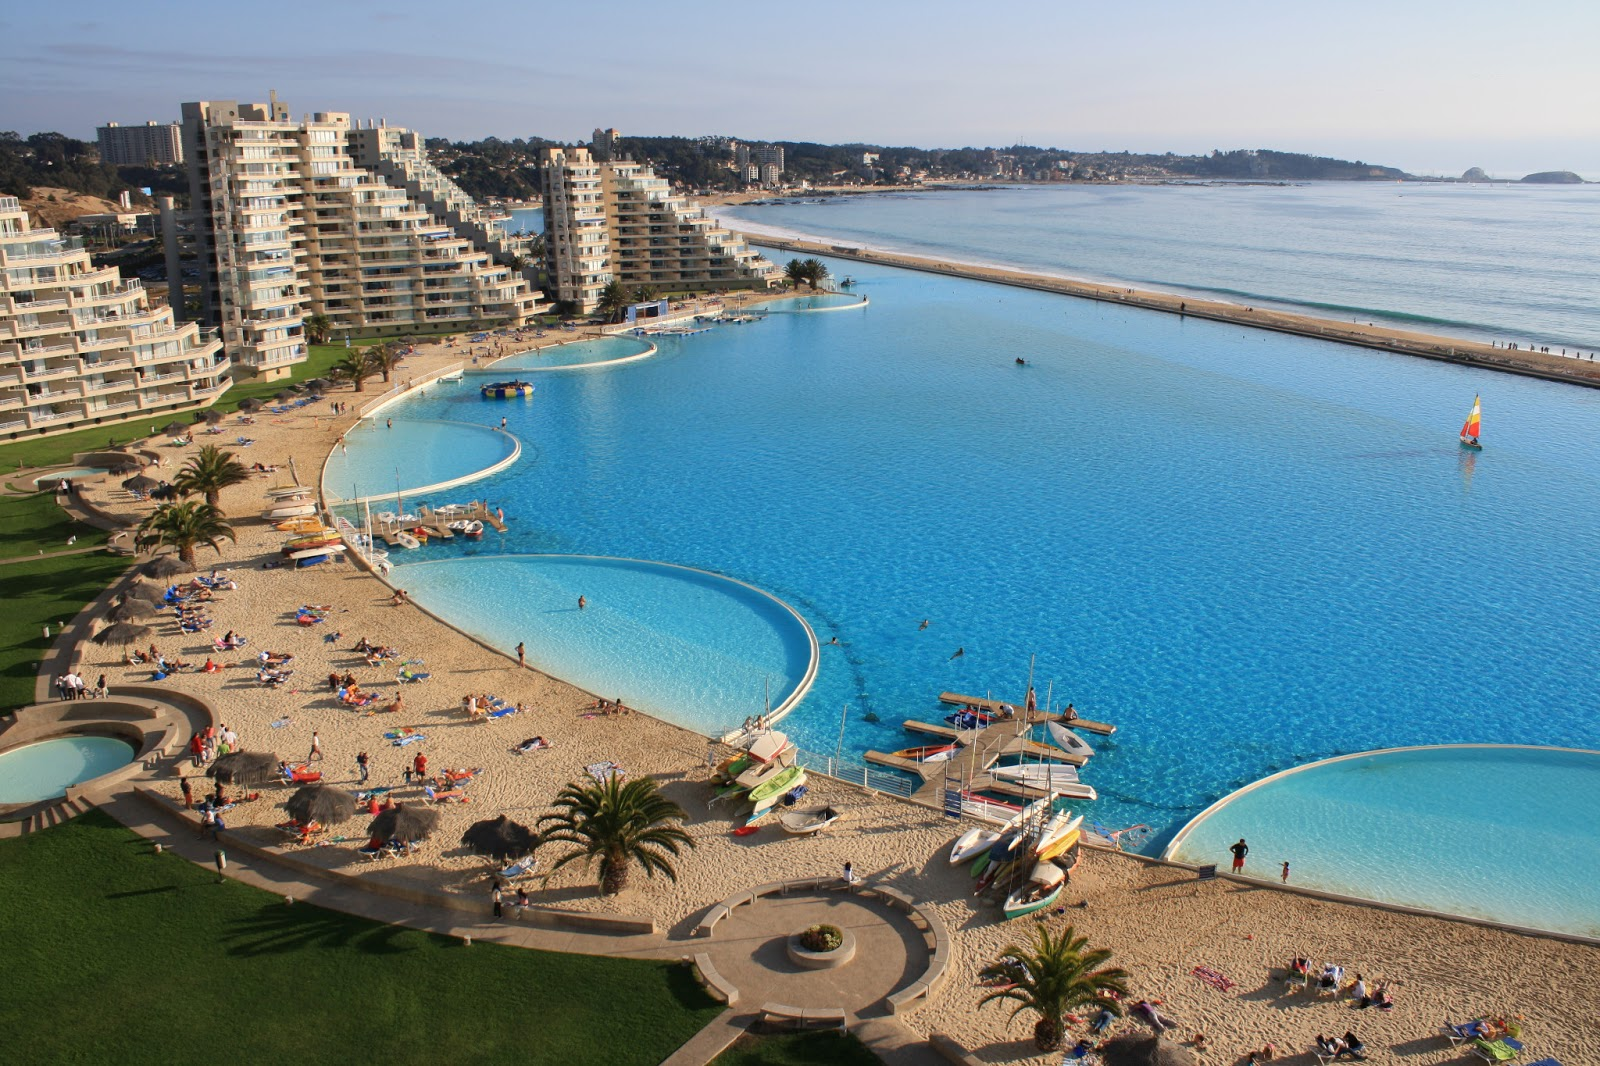 Luxury life design most beautiful pools around the world - The biggest swimming pool in chile ...